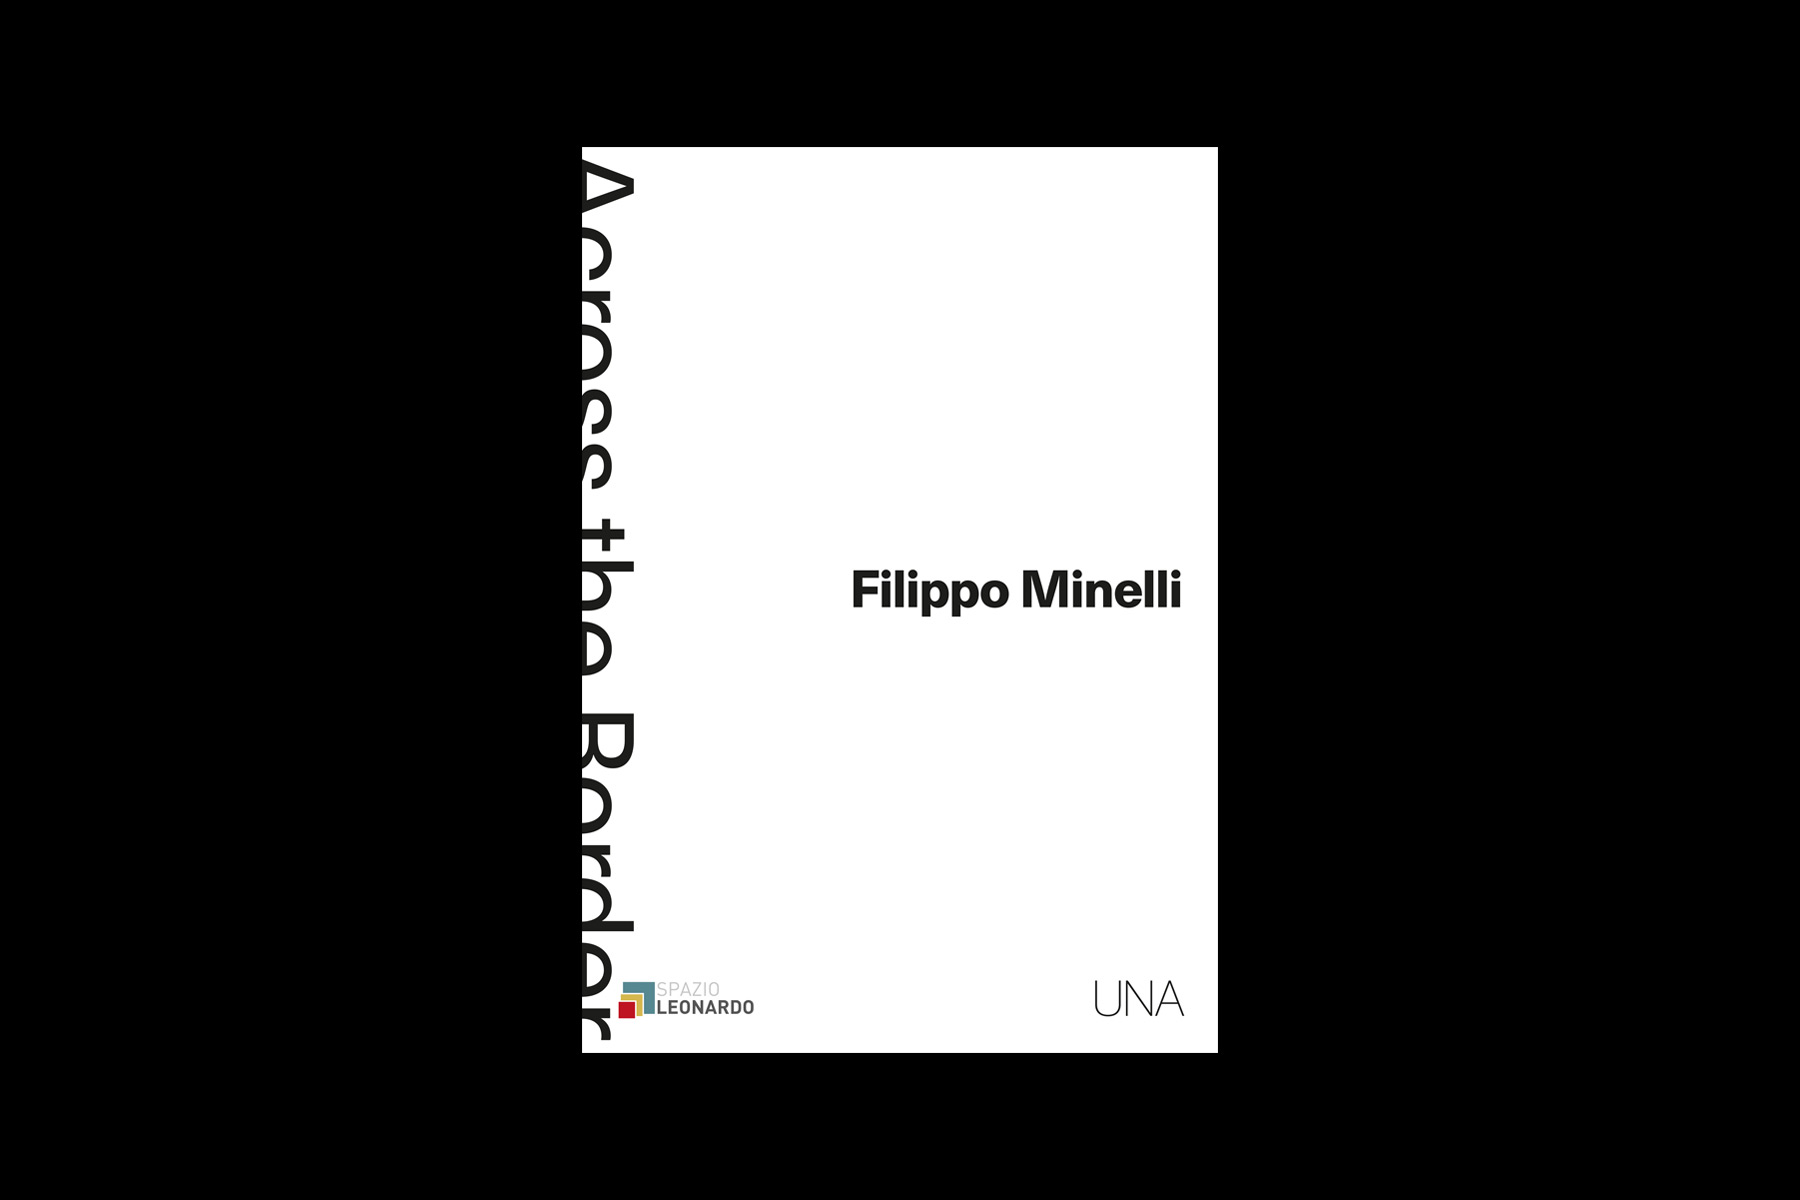 filippo minelli across the border